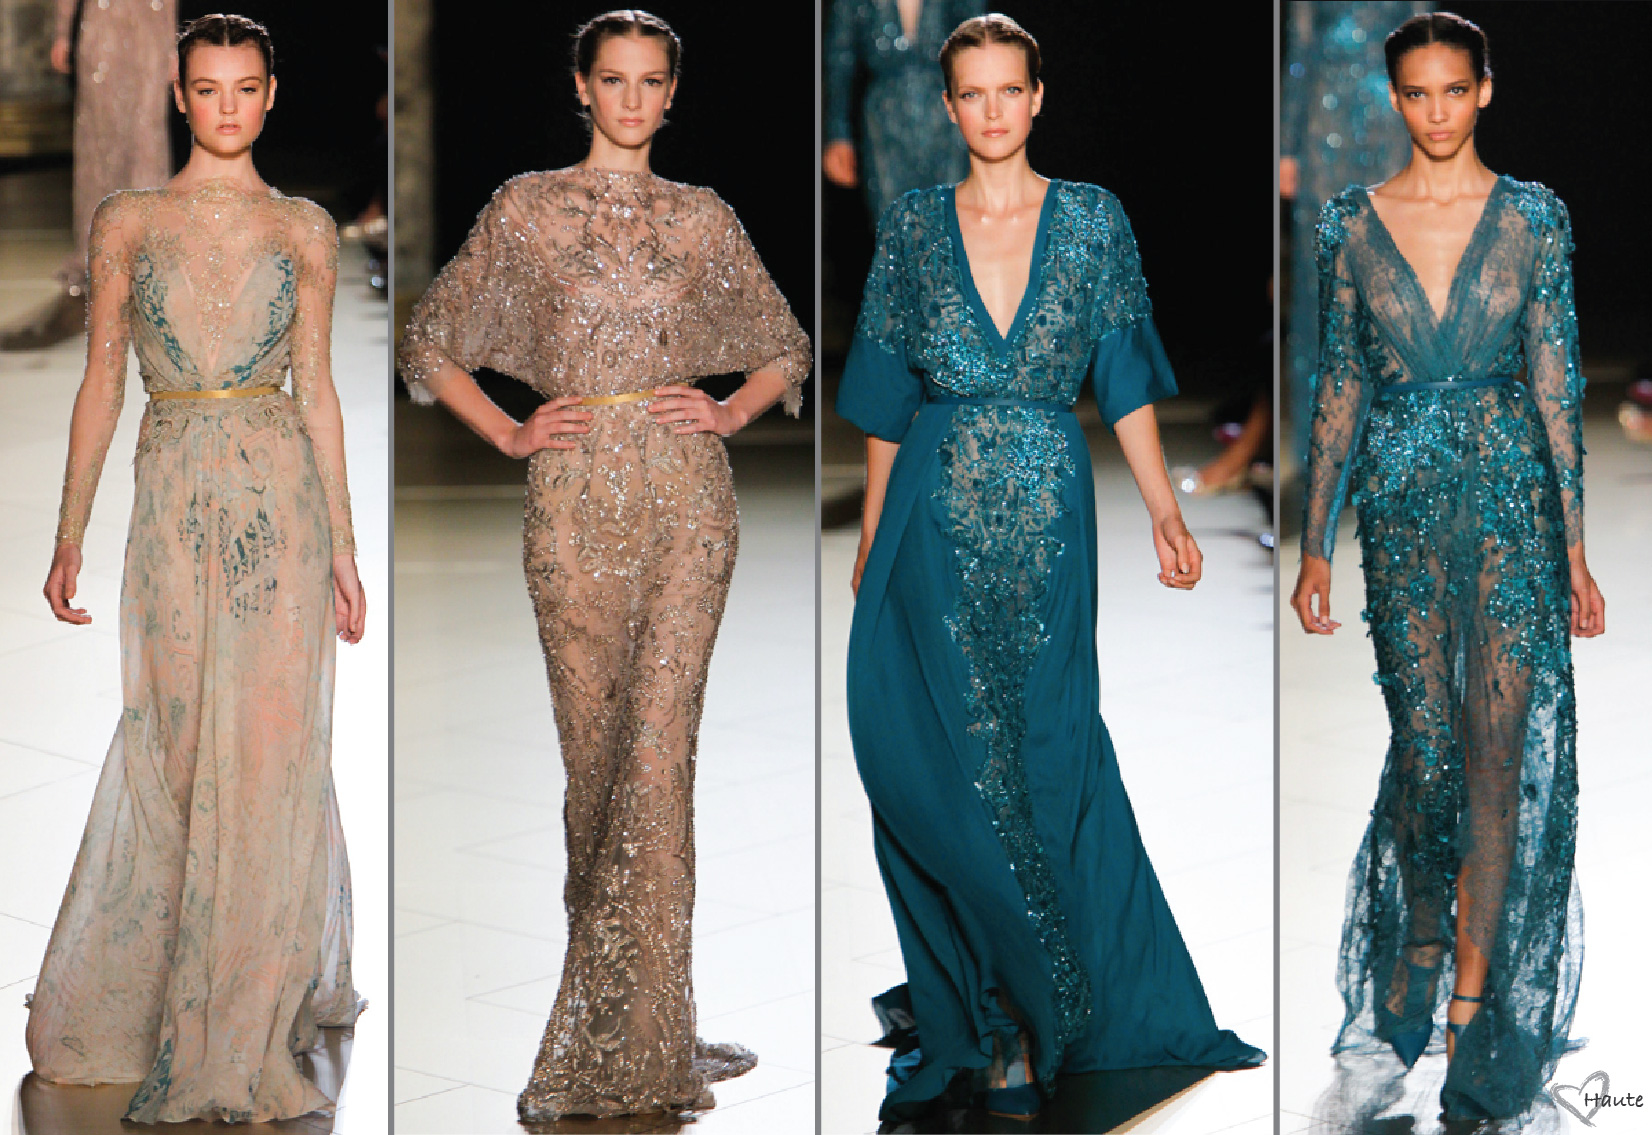 Elie saab fall 2012 haute couture collection my for A haute couture